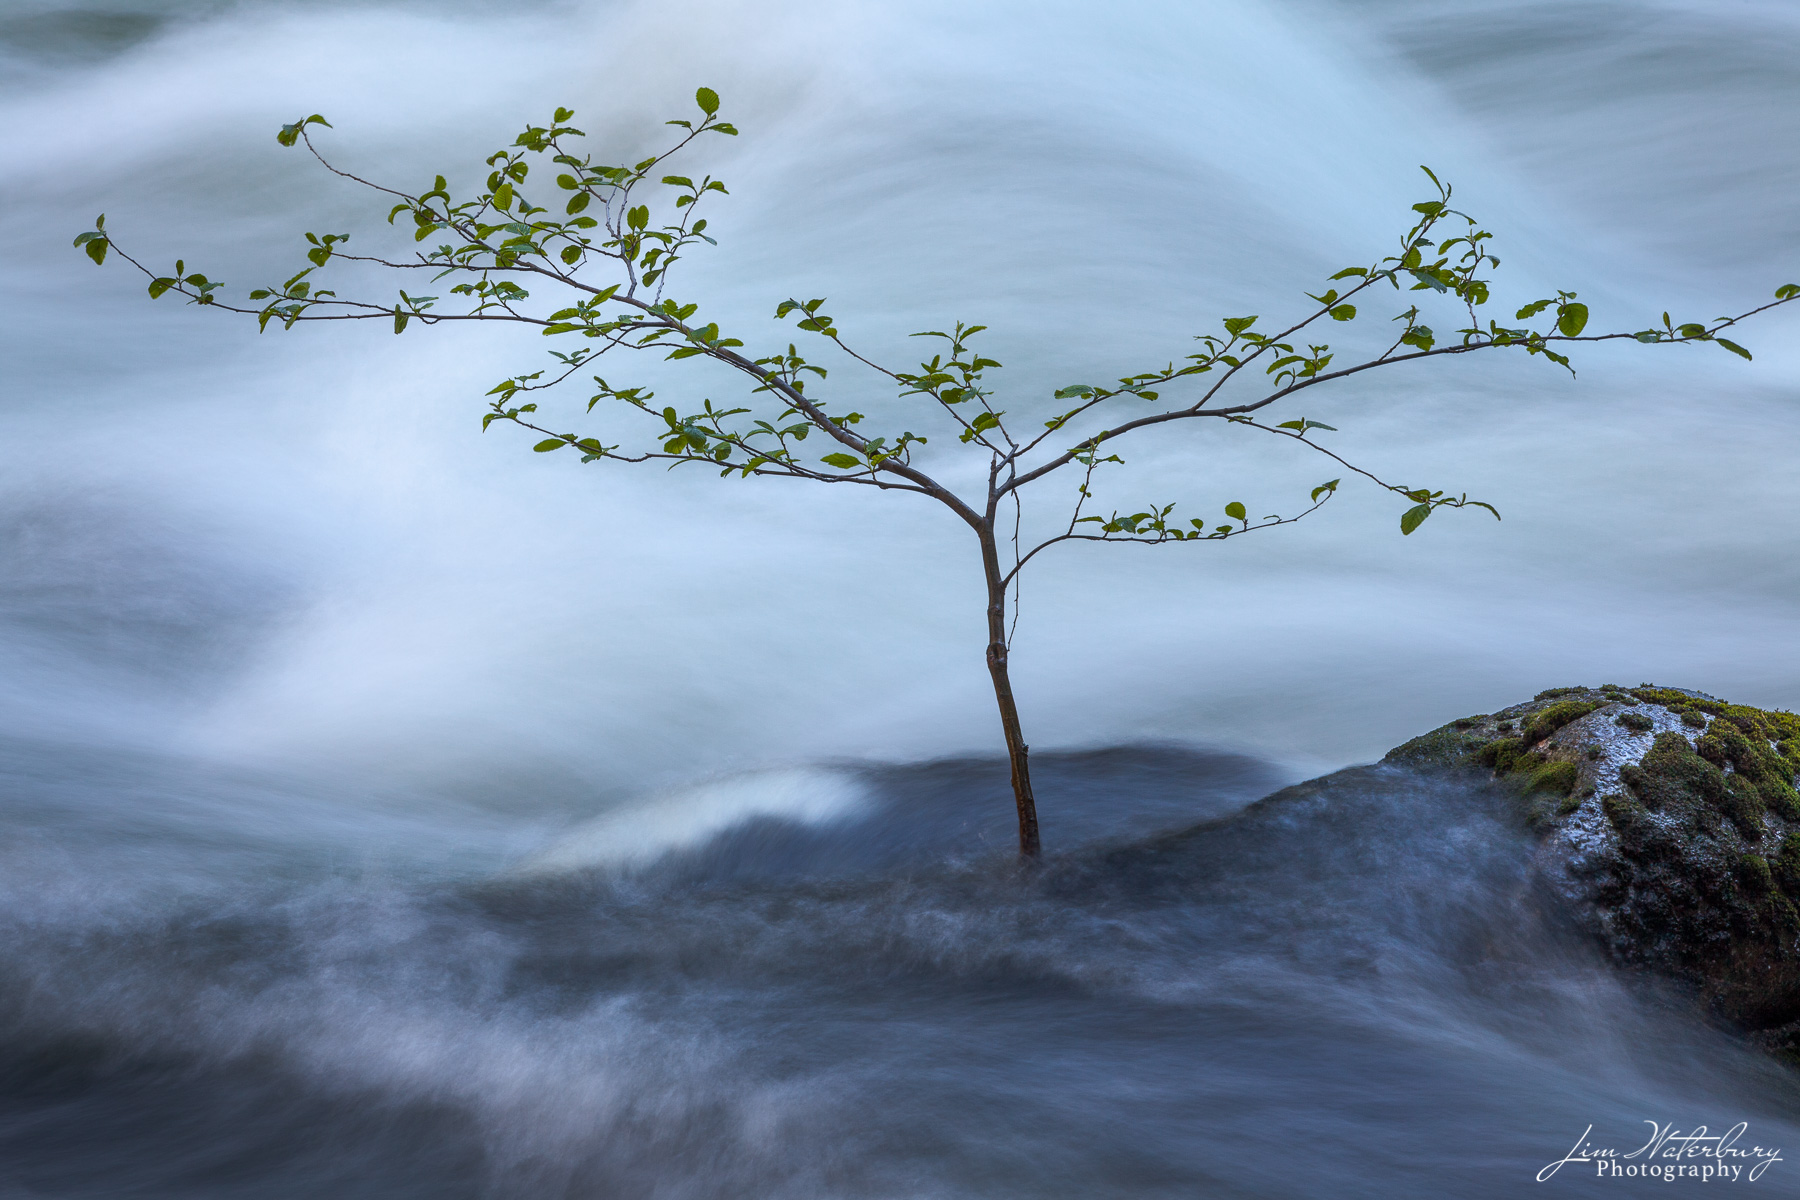 A small tree struggles to survive in the swift spring currents of the Merced River in Yosmite National Park.